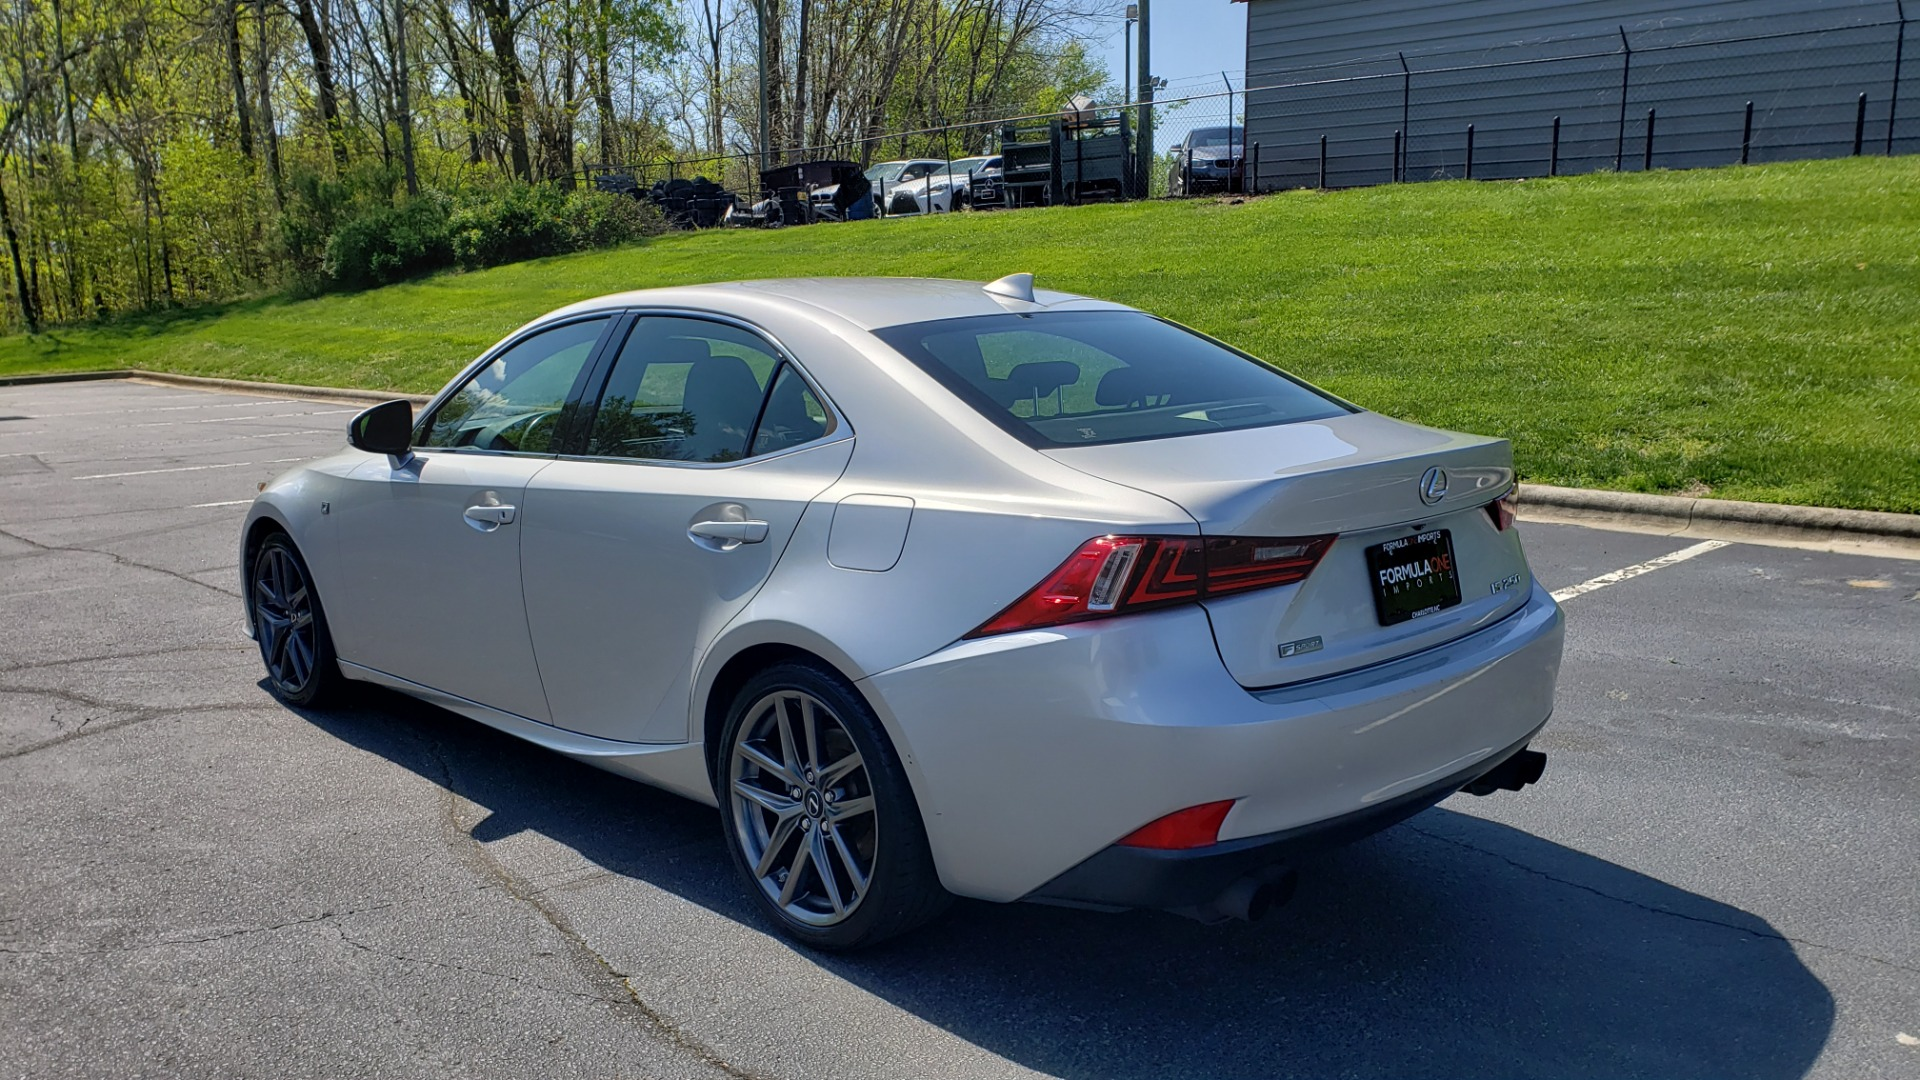 Used 2015 Lexus IS 250 F-SPORT / BSM / SUNROOF / VENT SEATS / REARVIEW for sale Sold at Formula Imports in Charlotte NC 28227 3